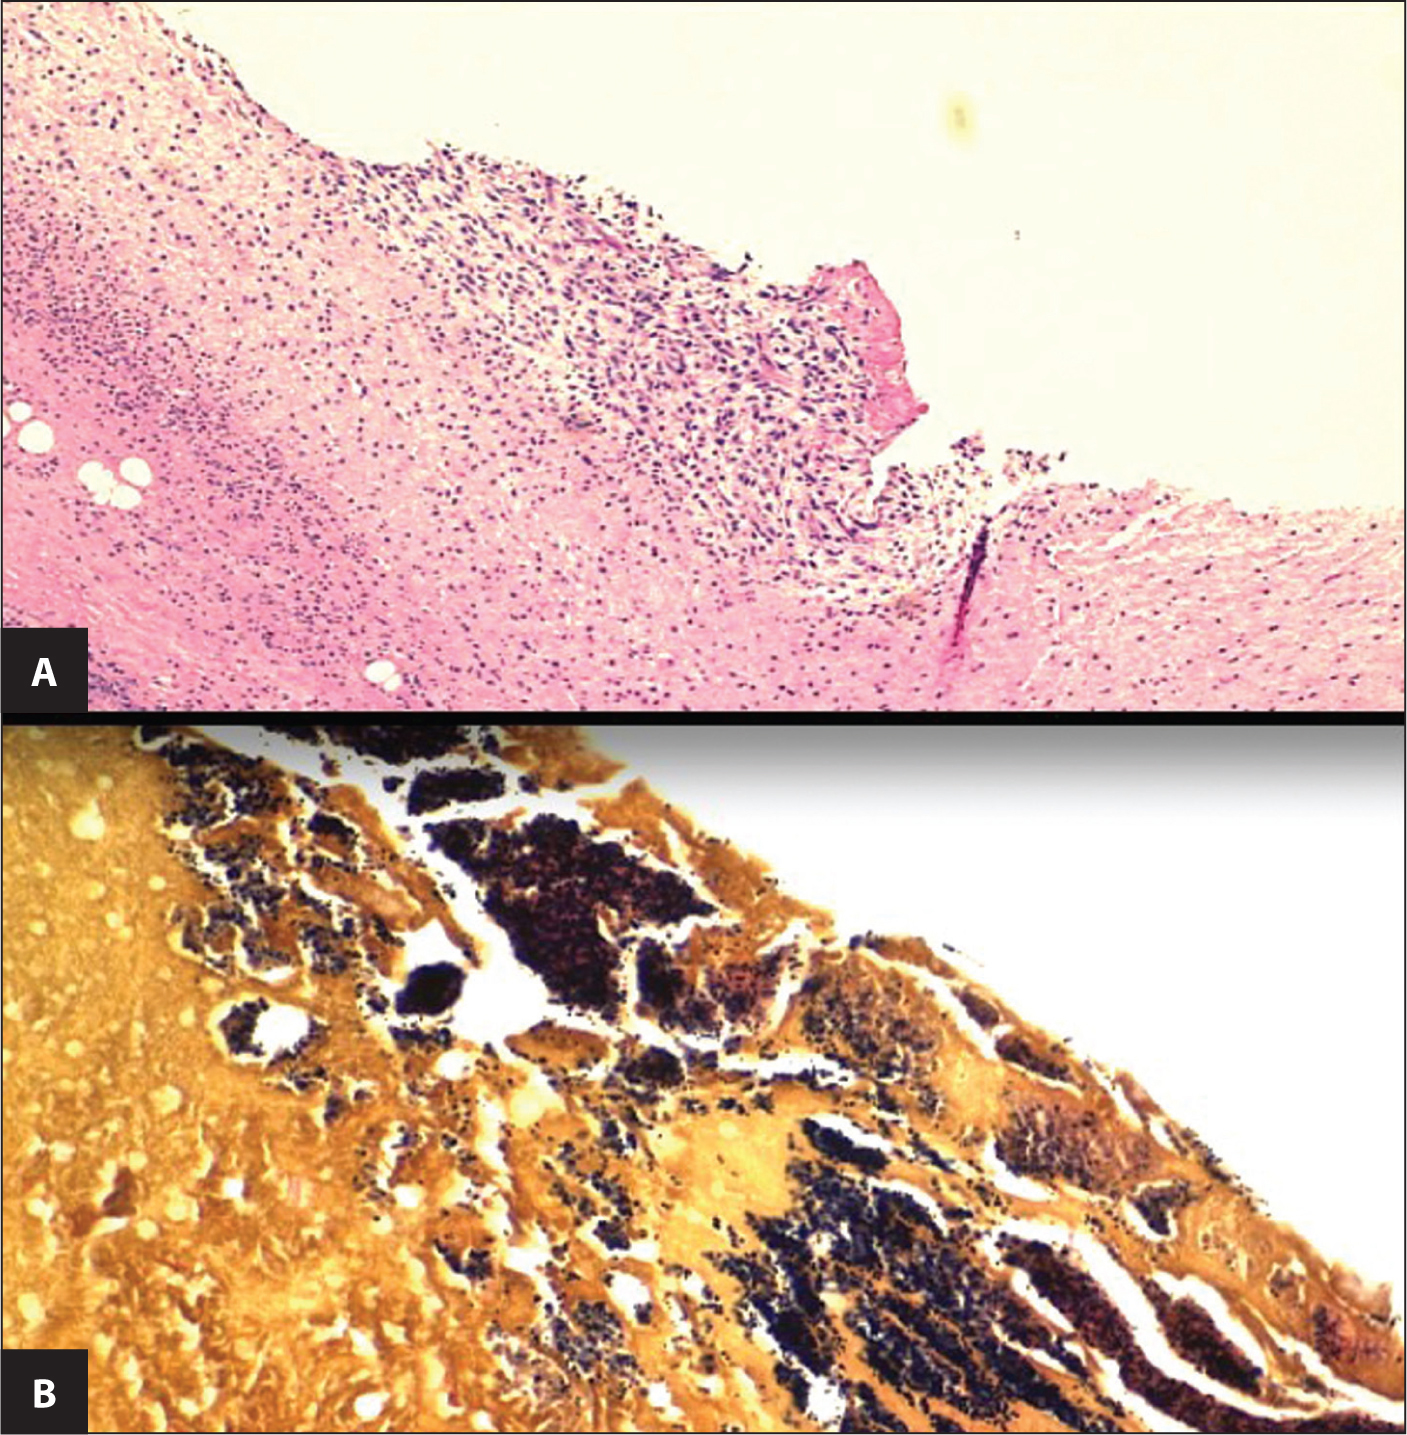 Pathologic sections of the patient's aortic valve vegetations. (A) The presence of granulation tissue suggests the duration of inflammation exceeded 7 days. Significant necrosis of valve tissue was also visible. (B) Gram stain of the vegetation revealed numerous gram-positive cocci in clusters.